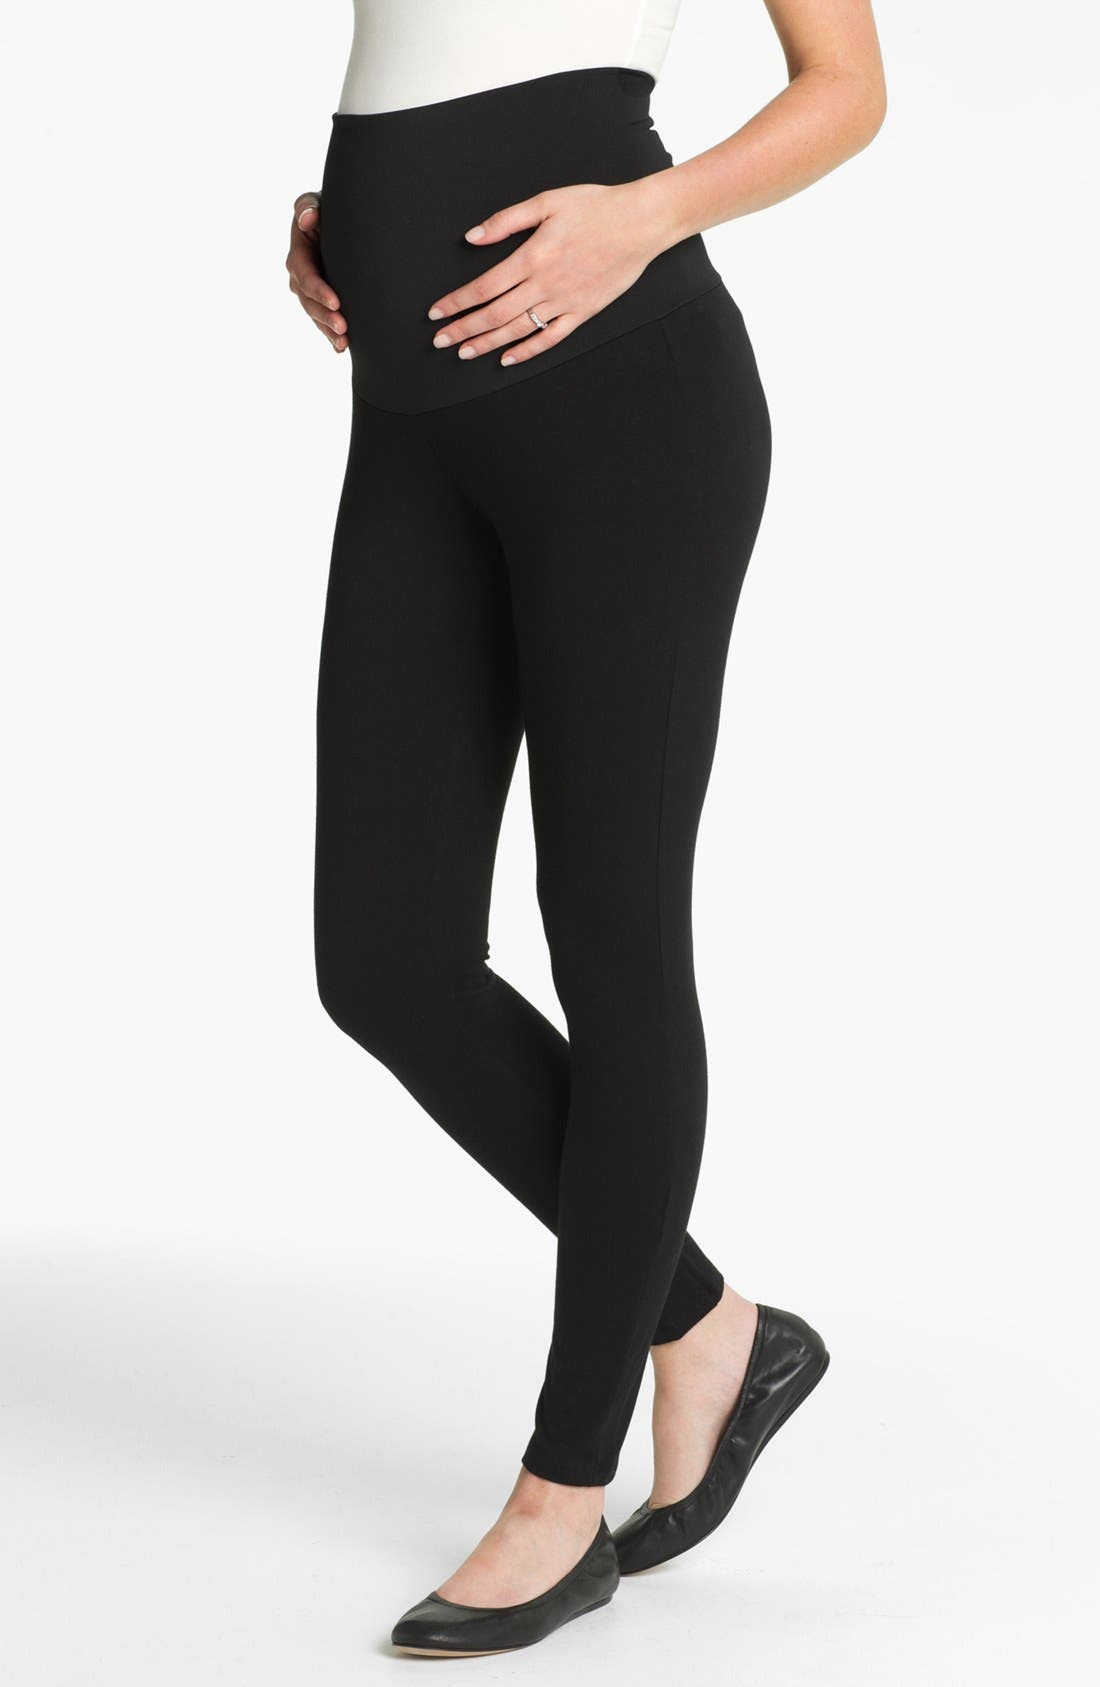 Alternate Image 1 Selected - Maternal America Belly Support Maternity Leggings